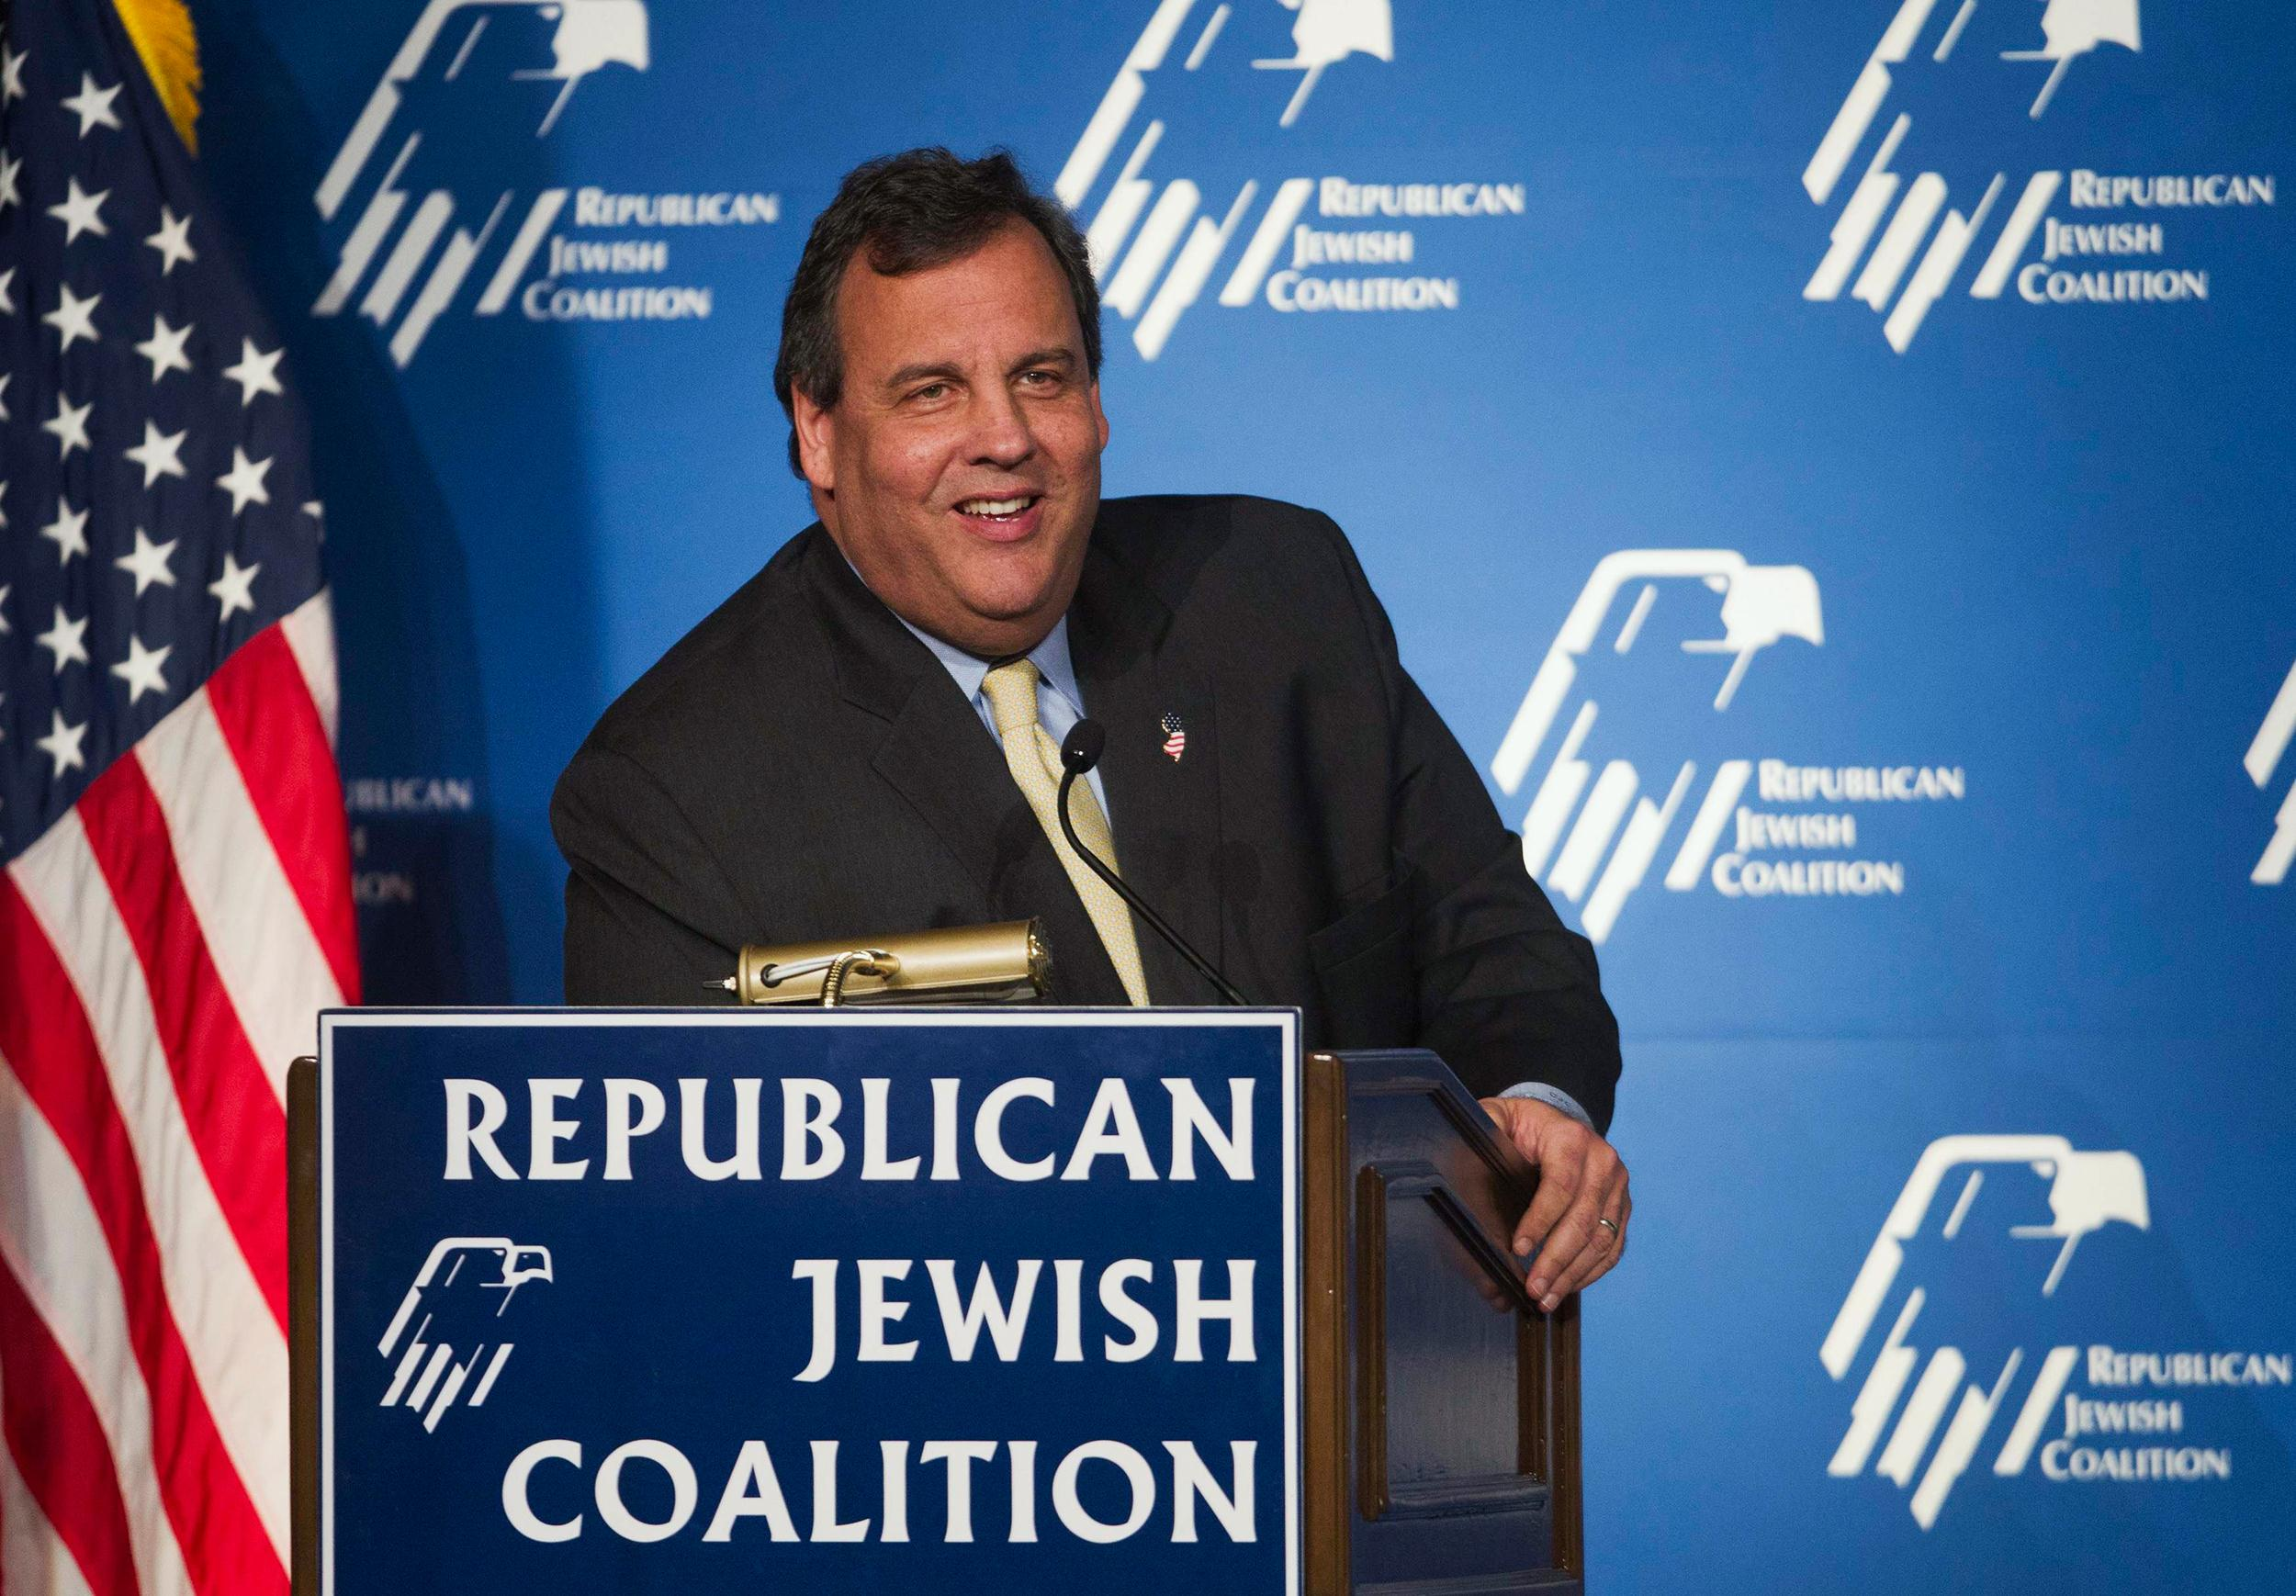 Image: New Jersey Governor Christie reacts to a question during the Republican Jewish Coalition Spring Leadership Meeting at the Venetian Resort in Las Vegas